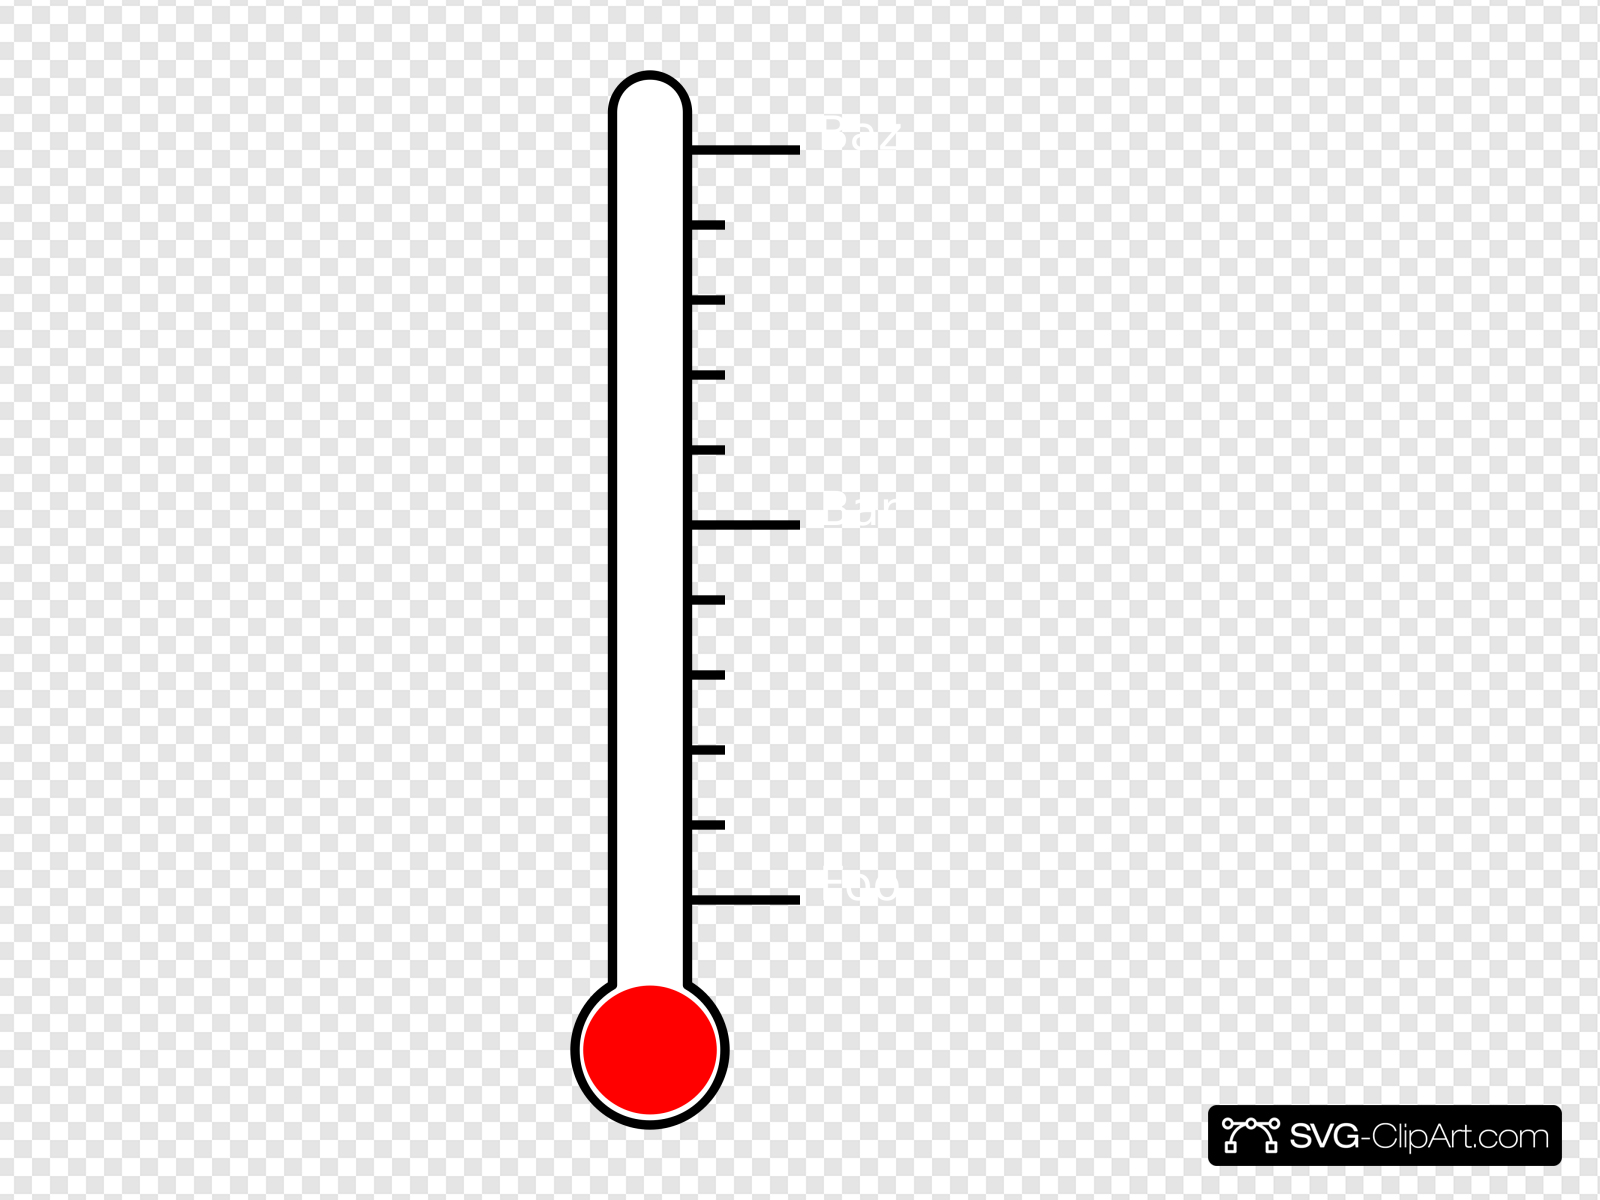 Bursting thermometer clipart image royalty free library Blank Thermometer Clip art, Icon and SVG - SVG Clipart image royalty free library